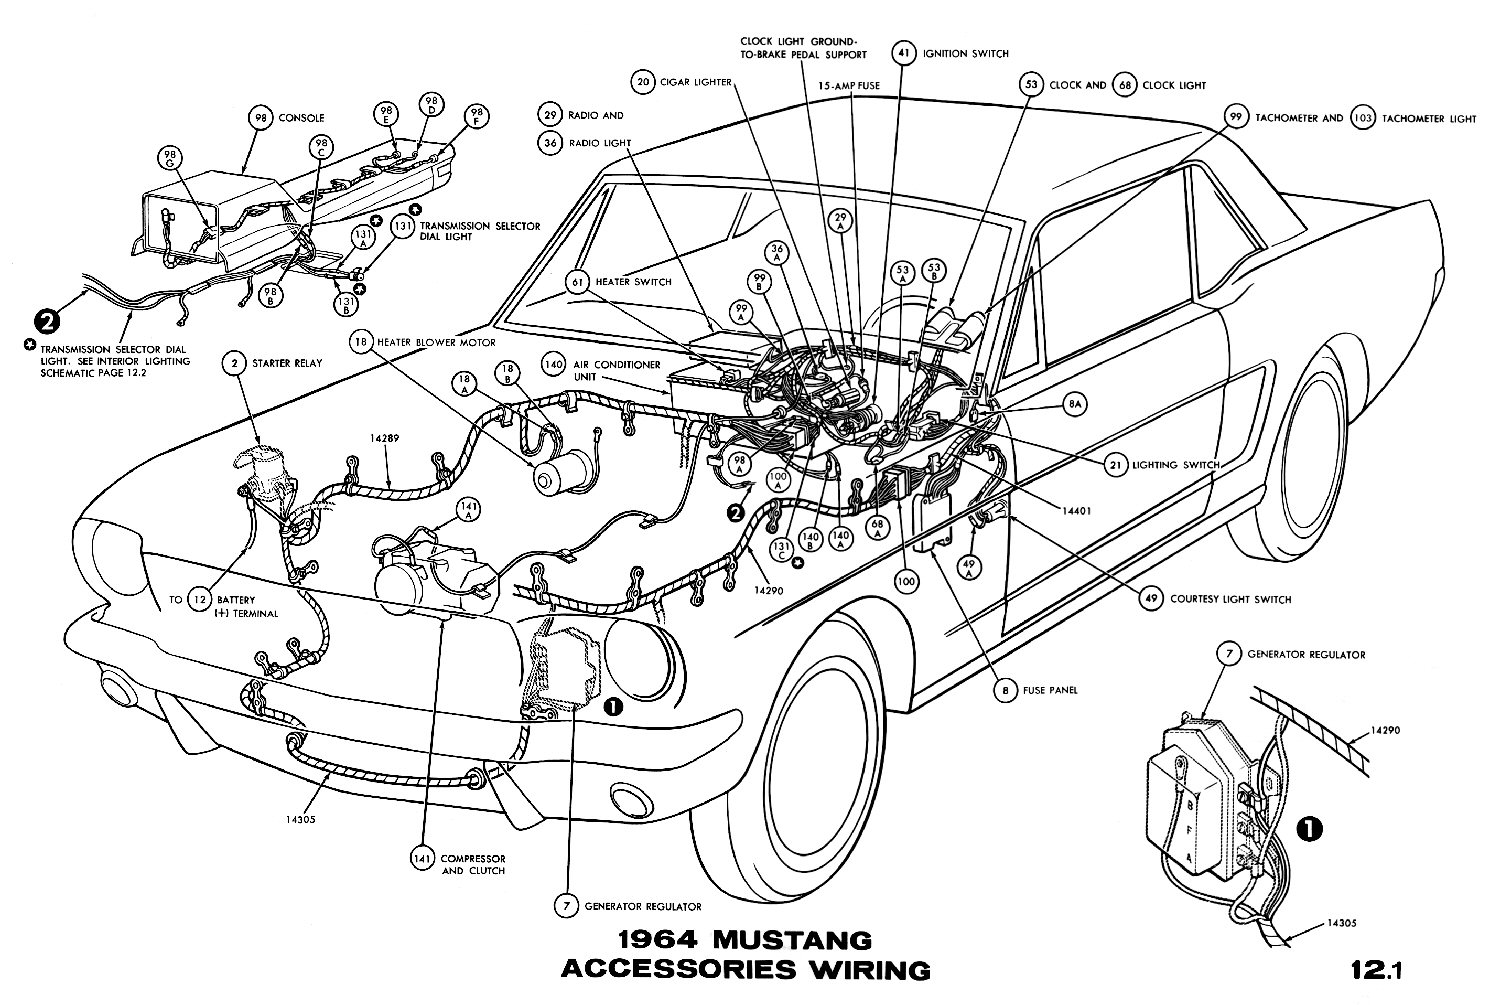 1964 mustang fuse diagram simple wiring post1964 mustang wiring diagrams average joe restoration 05 mustang fuse box diagram 1964 mustang fuse diagram